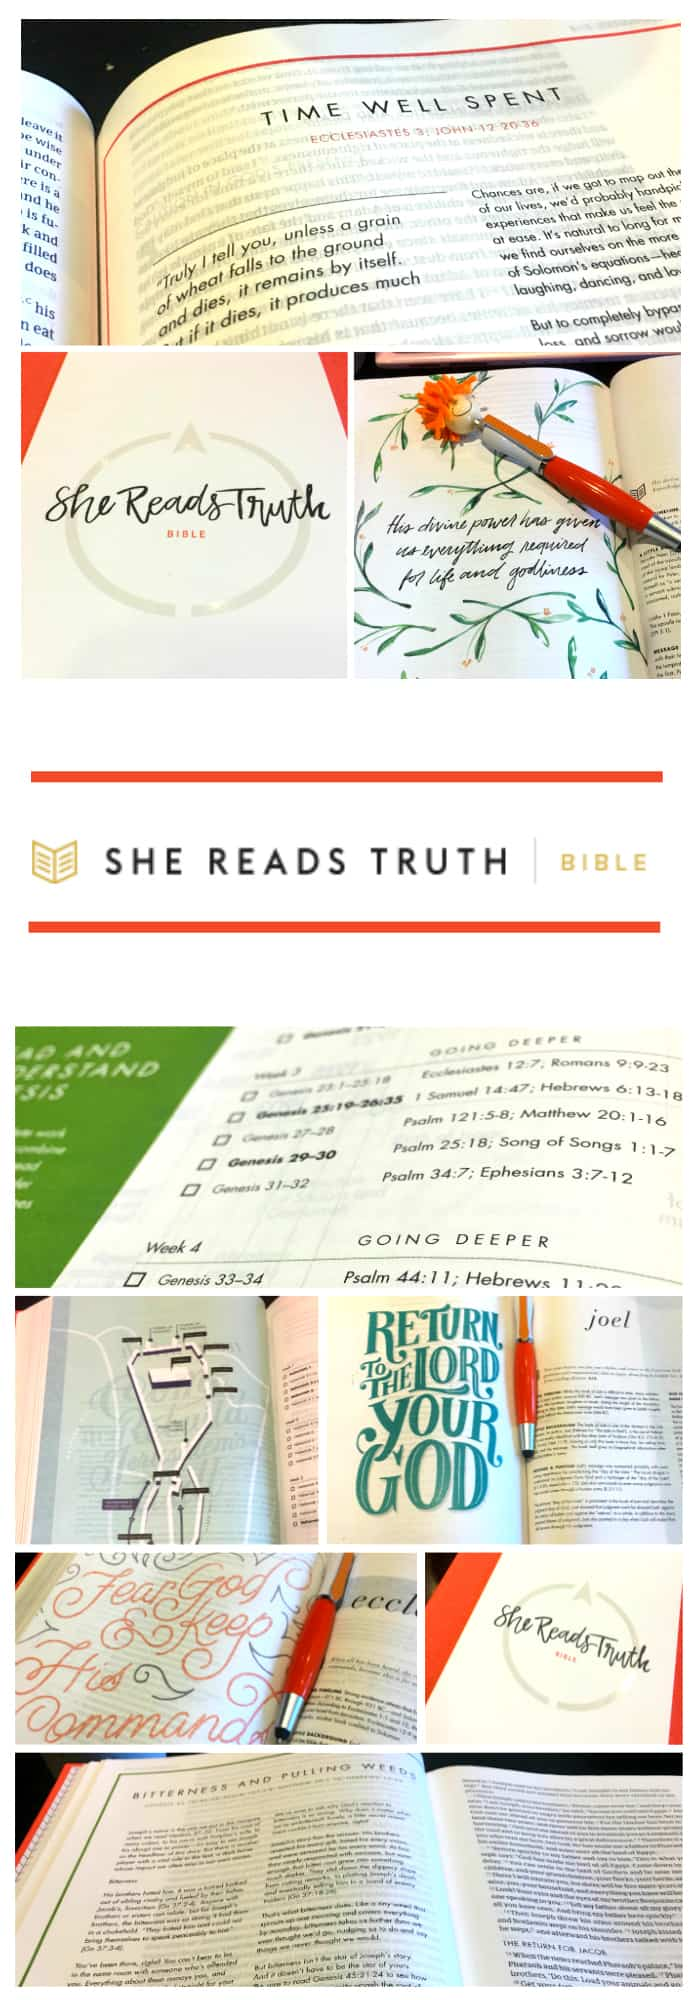 """To share how much I love this Bible, I have to start with the beauty. The claim of She Reads Truth is that it displays the """"beauty, goodness, and truth of Scripture"""". That it does. I think my favorite part is the stunning illustrations of Scripture meant to draw the eye to key verses."""